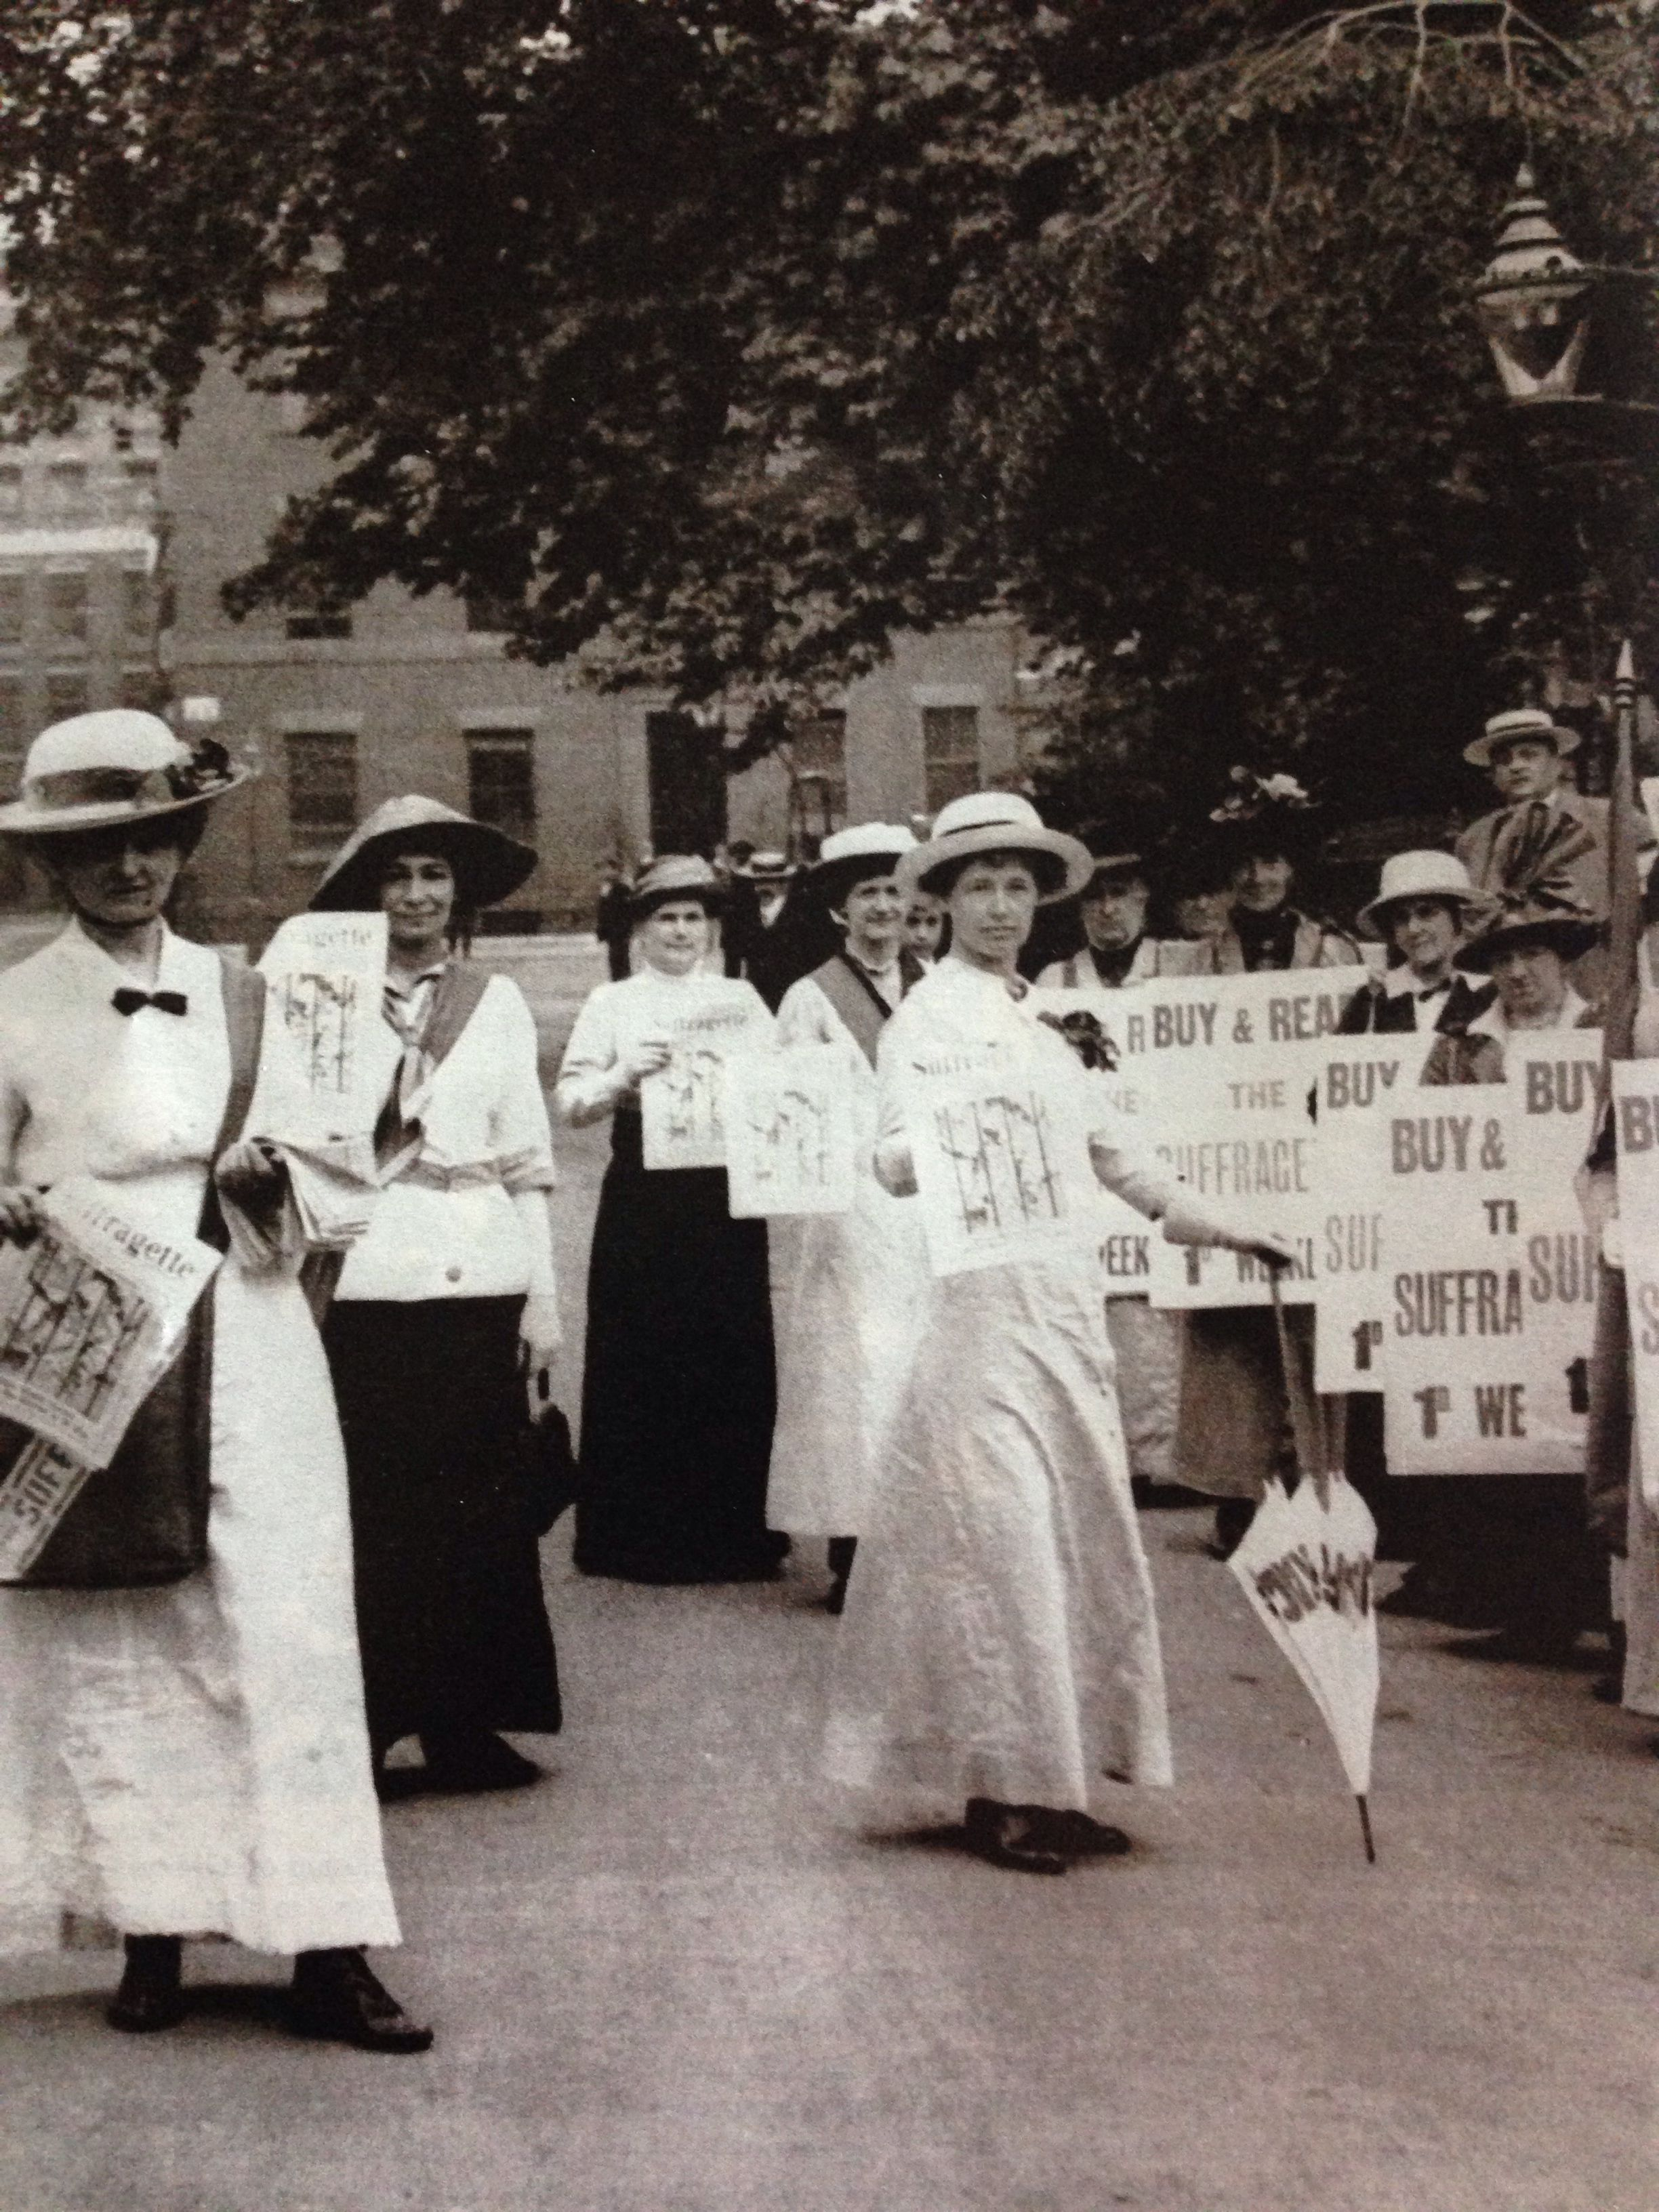 Suffragettes Selling The Suffragette Newspaper July 1914 Women In History Suffragette Suffragette Movement [ 3264 x 2448 Pixel ]